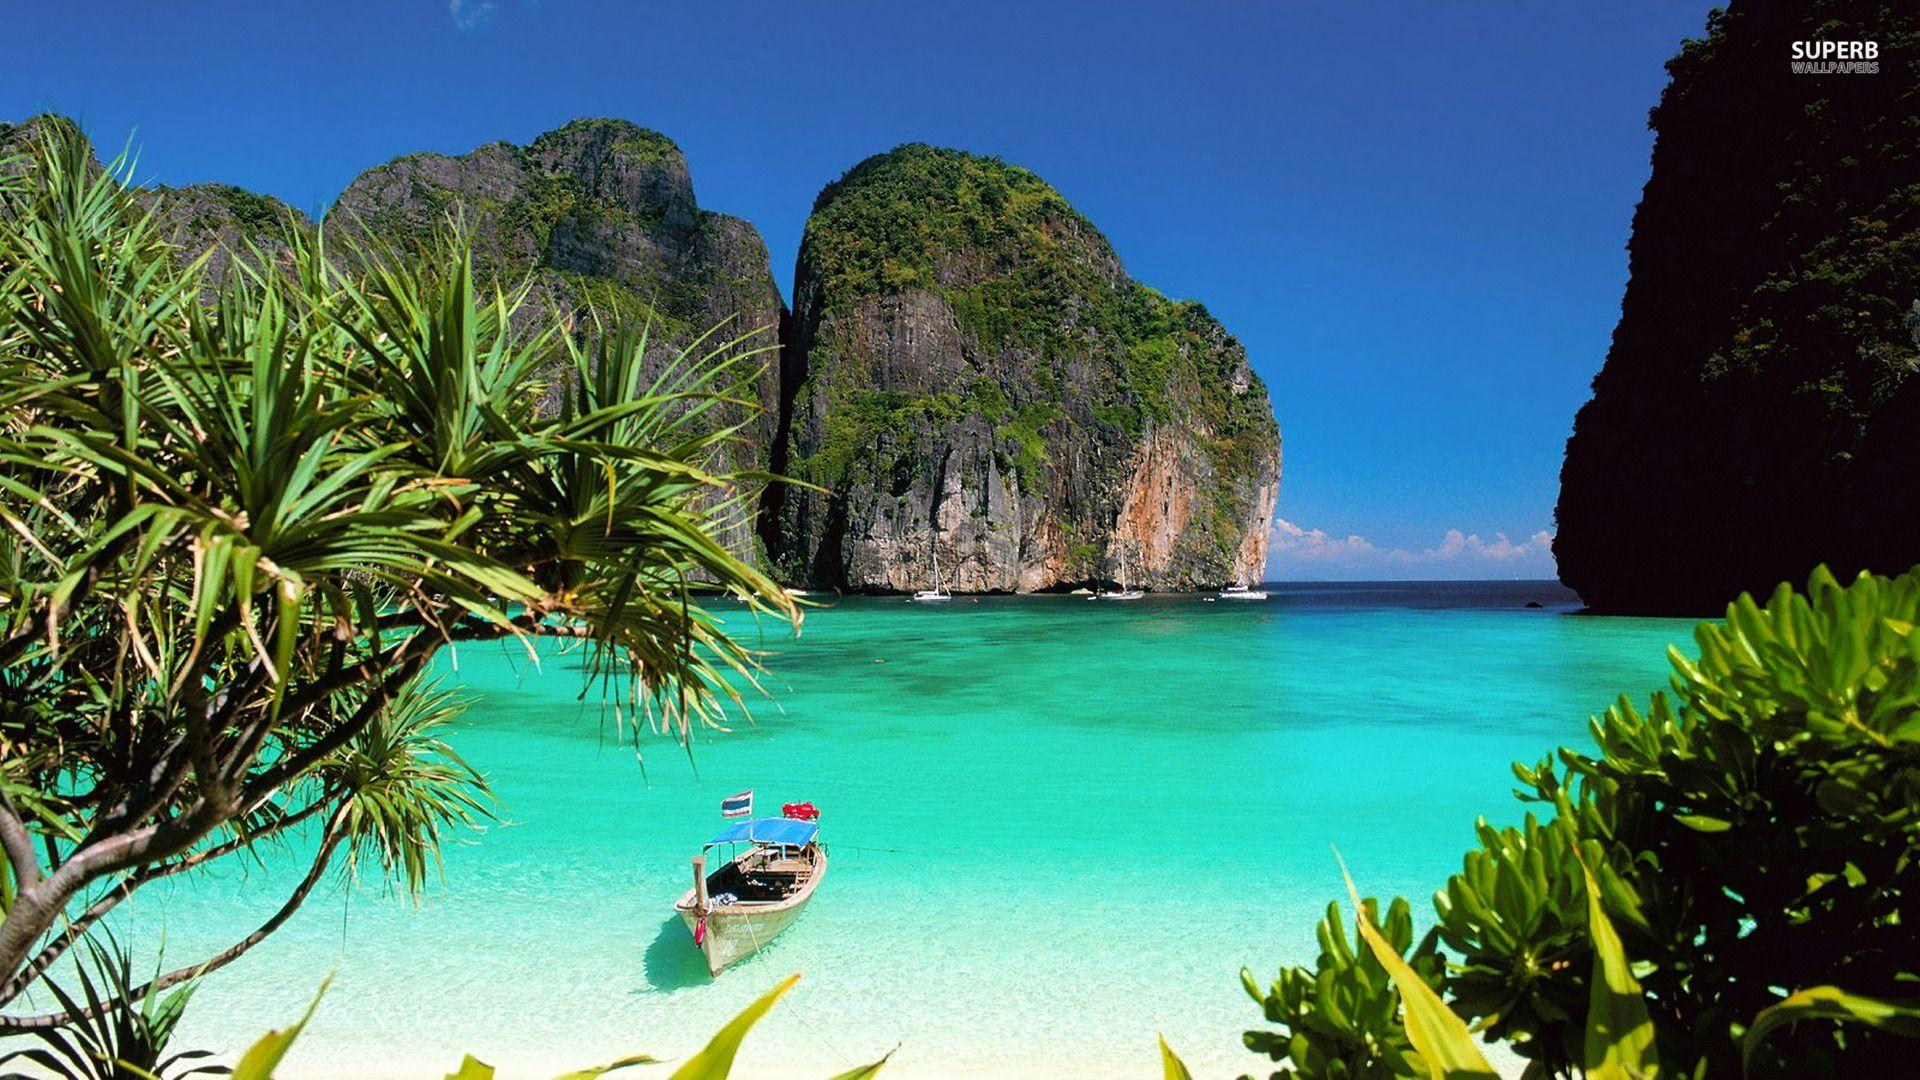 Quality Thailand Wallpapers, Countries